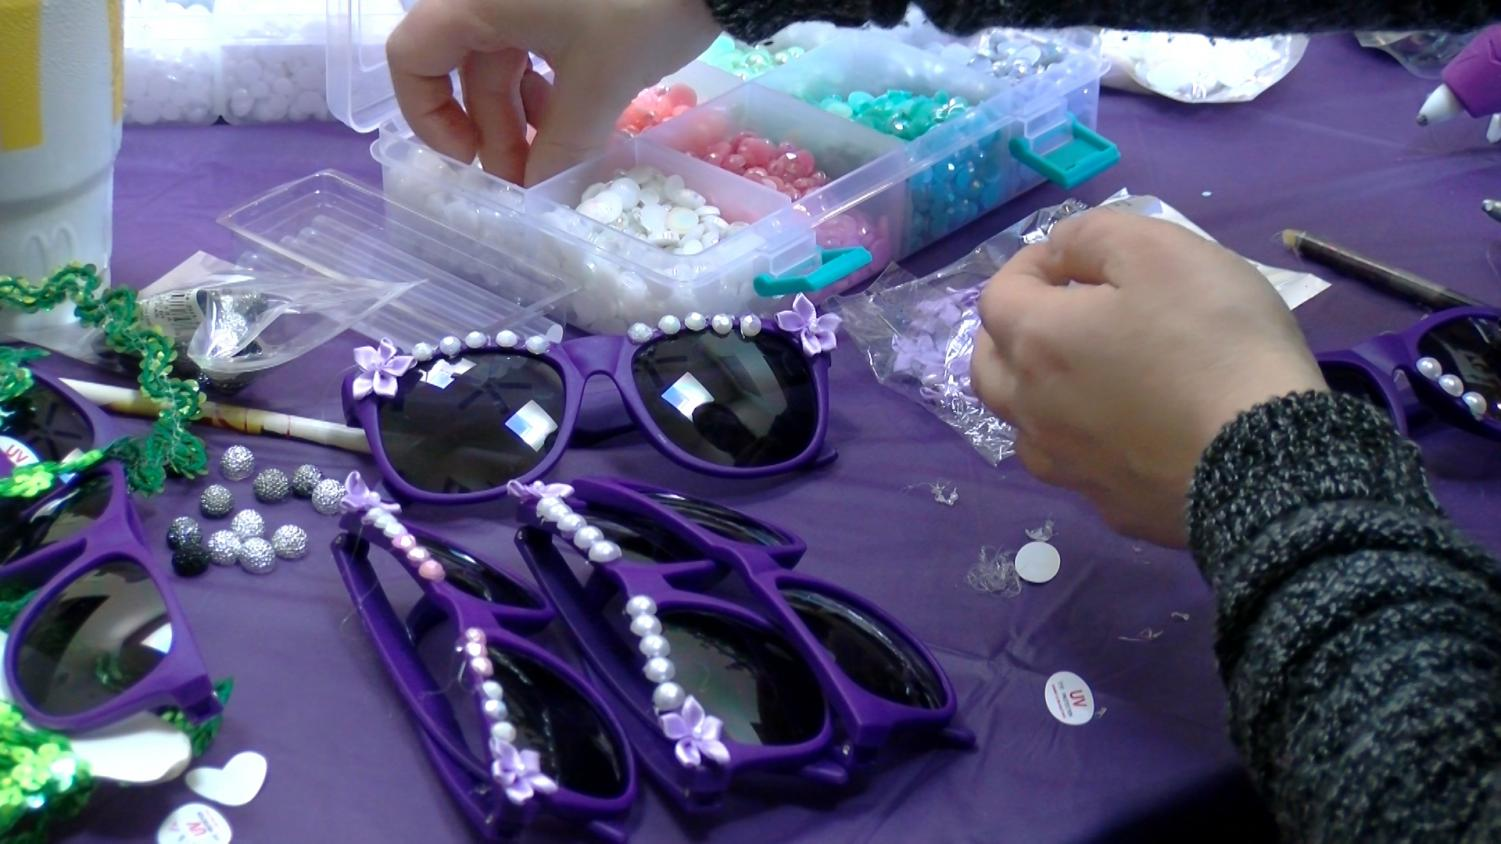 Members of the Krewe of Iris decorate their signature sunglasses. The all-female Krewe rolls Uptown the Saturday before Mardi Gras Photo credit: Amy Ngo